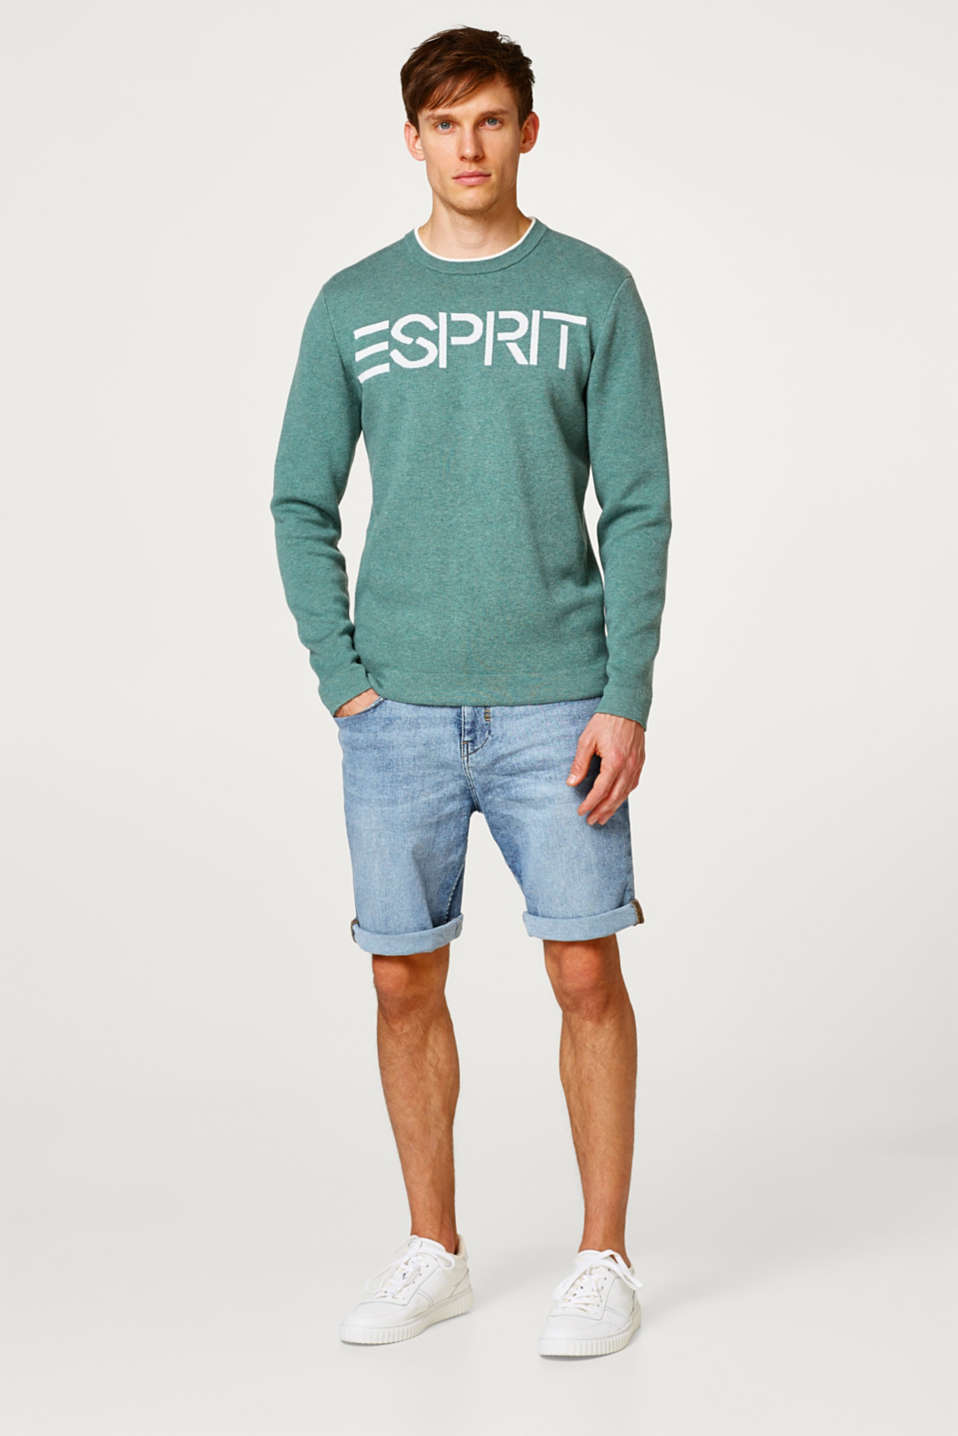 Thick jersey jumper with an intarsia logo